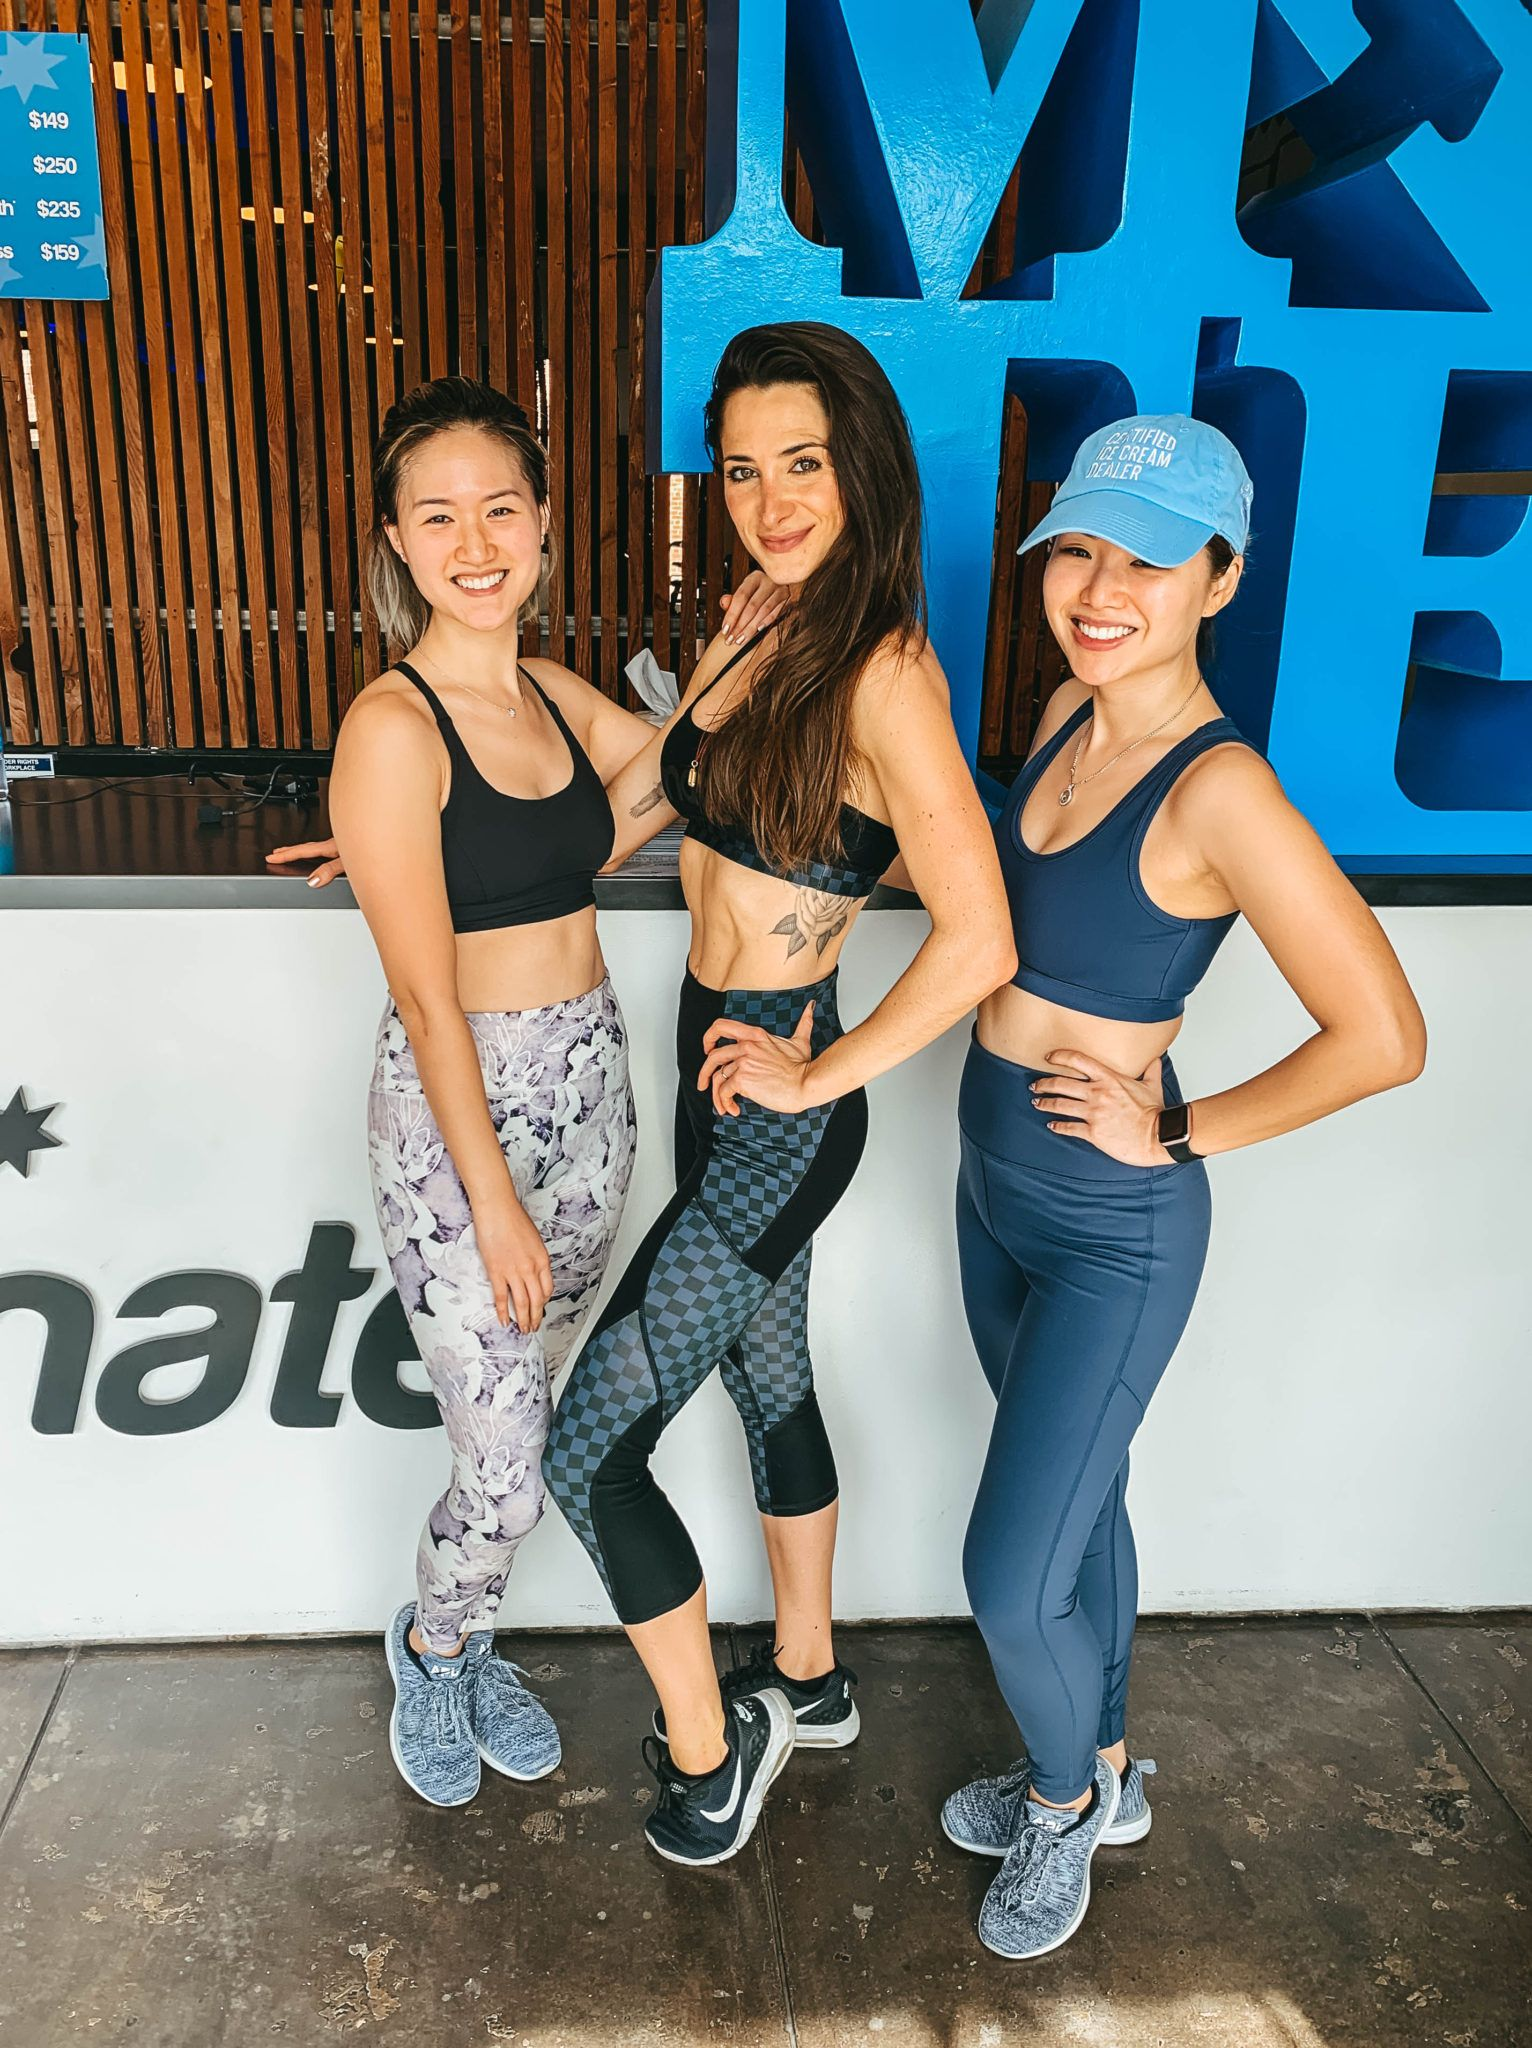 Hottest Female La Instructors Exercise With Extra Fries La Fitness Fitness Studio Los Angeles Fitness